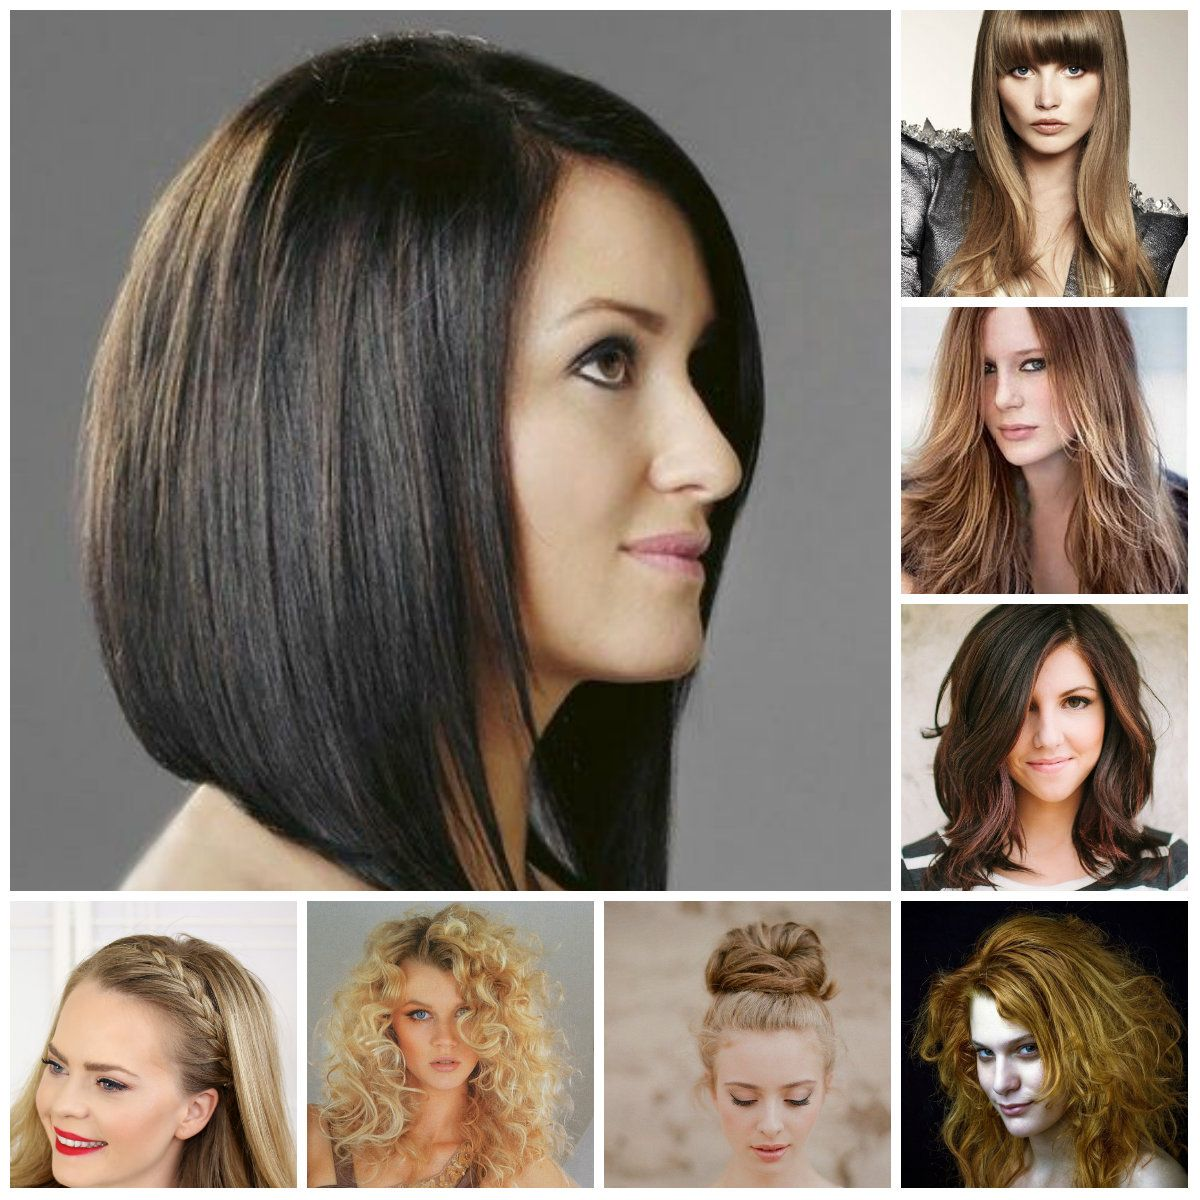 Penteados para 2016 | Trendy hairstyles, Short hair and Haircuts